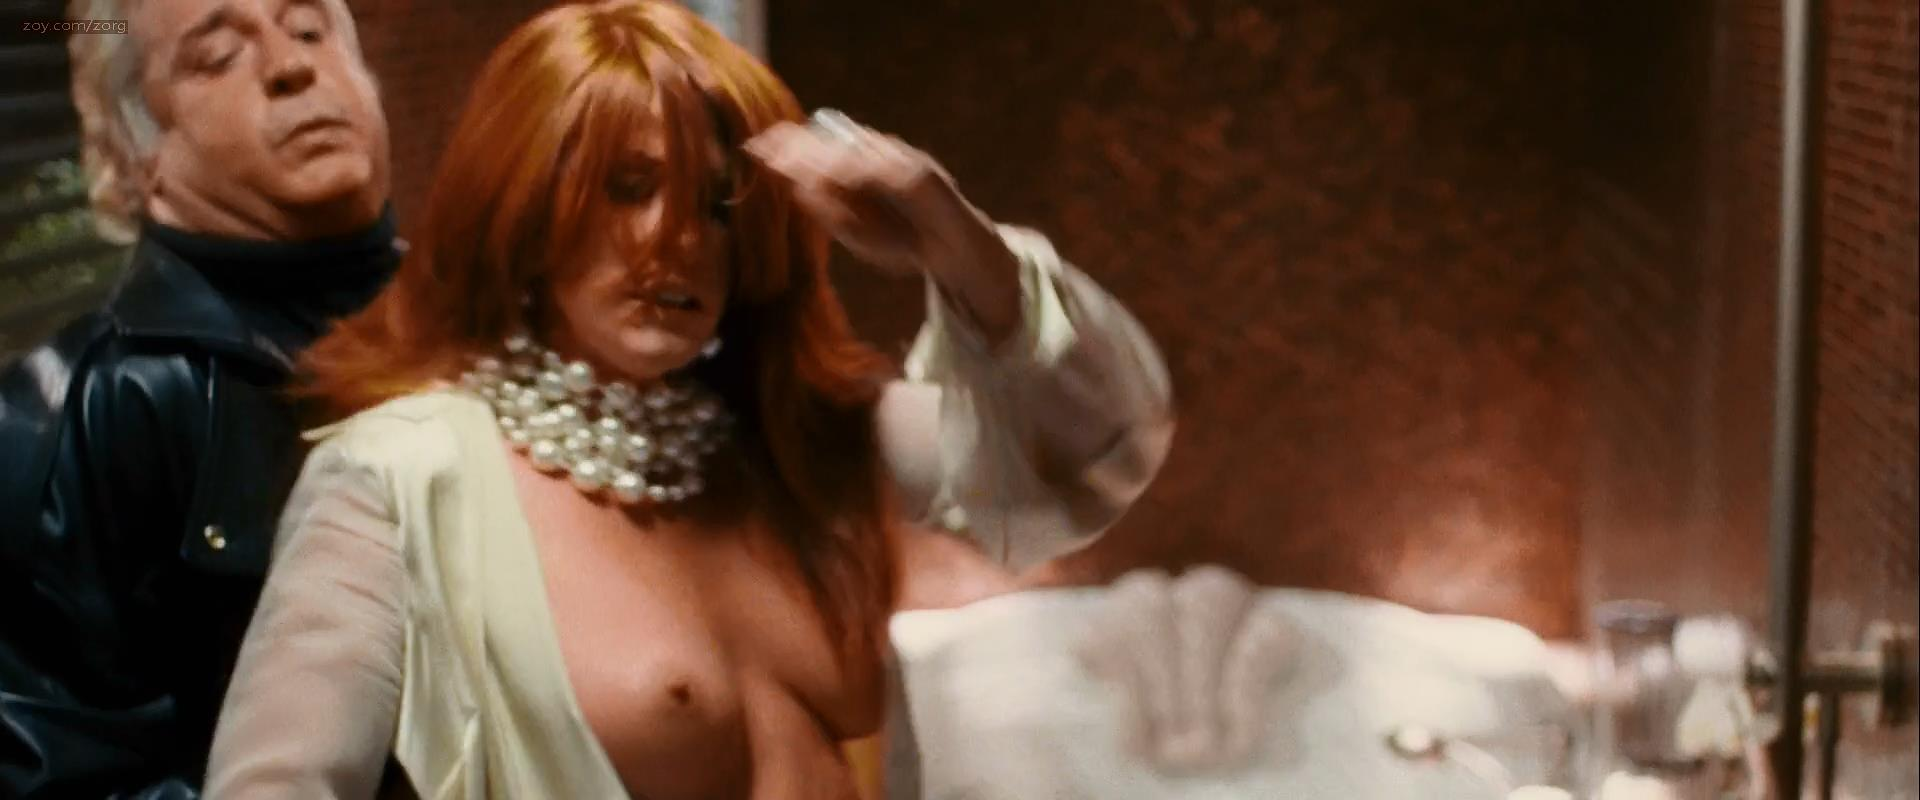 Angie everhart porn thanks